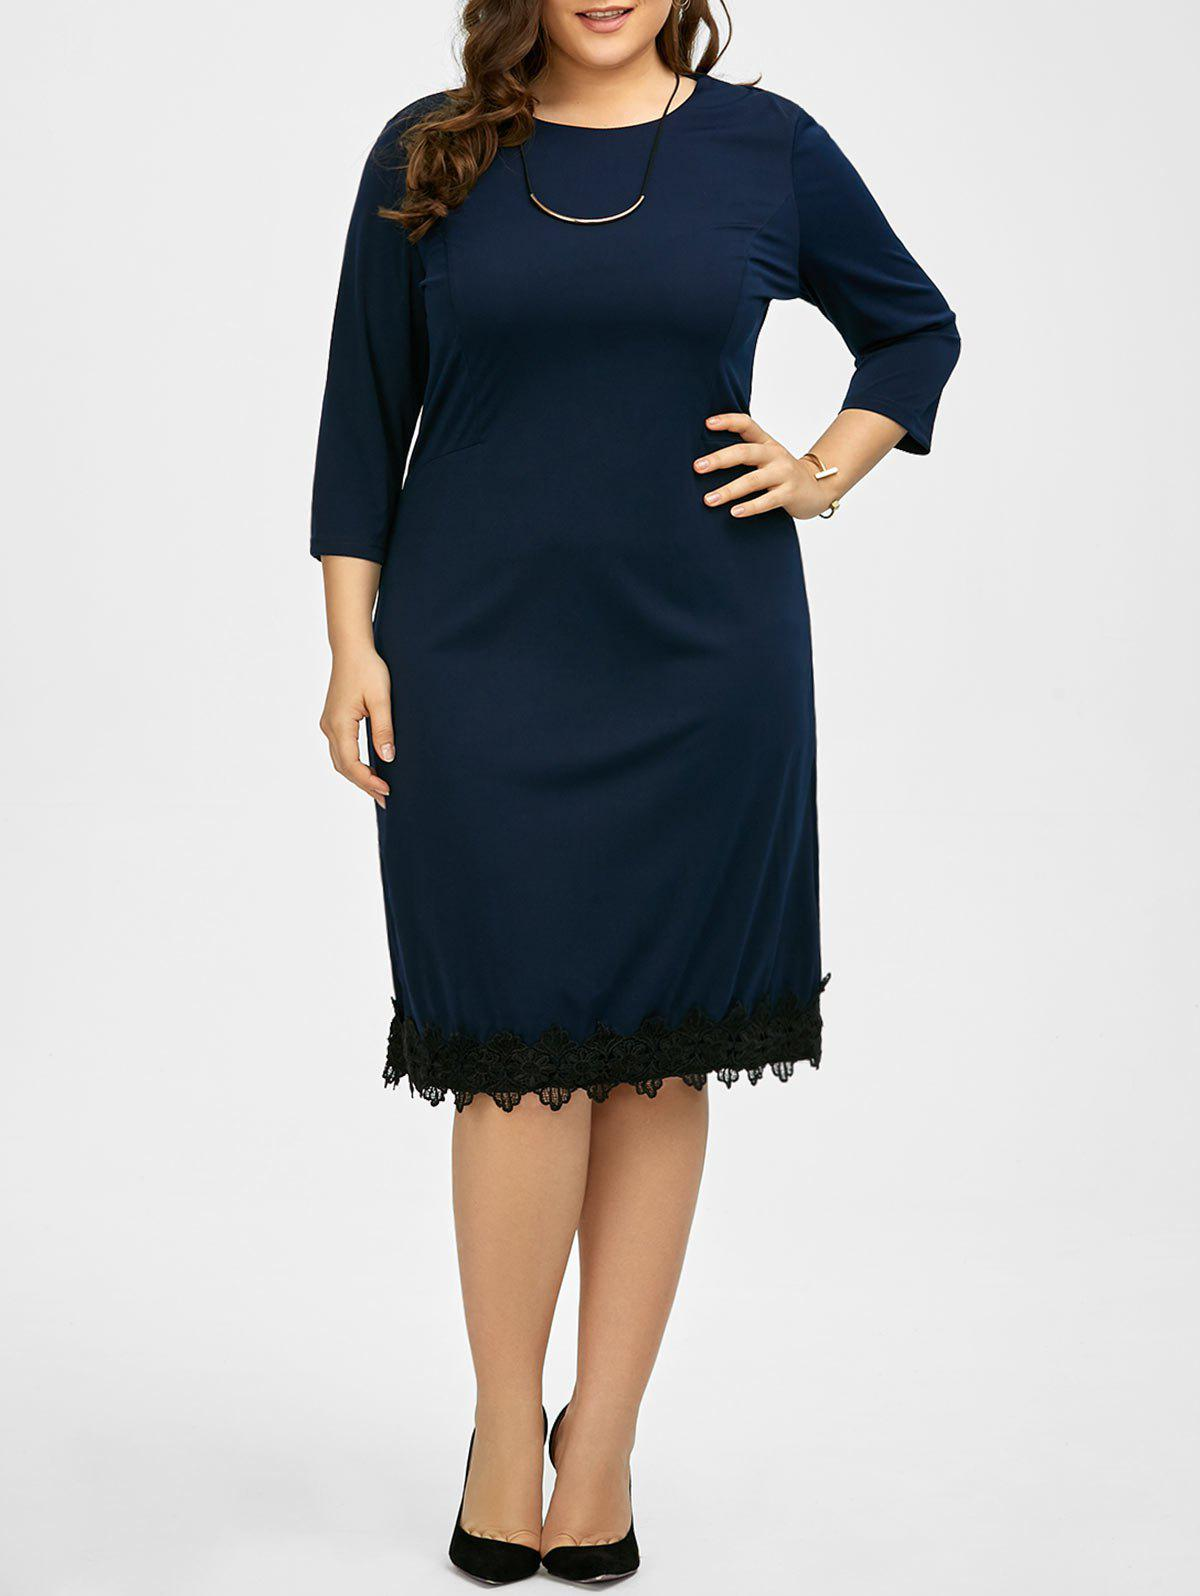 Plus Size Lace Trim Knee Length Work Dress - PURPLISH BLUE 5XL